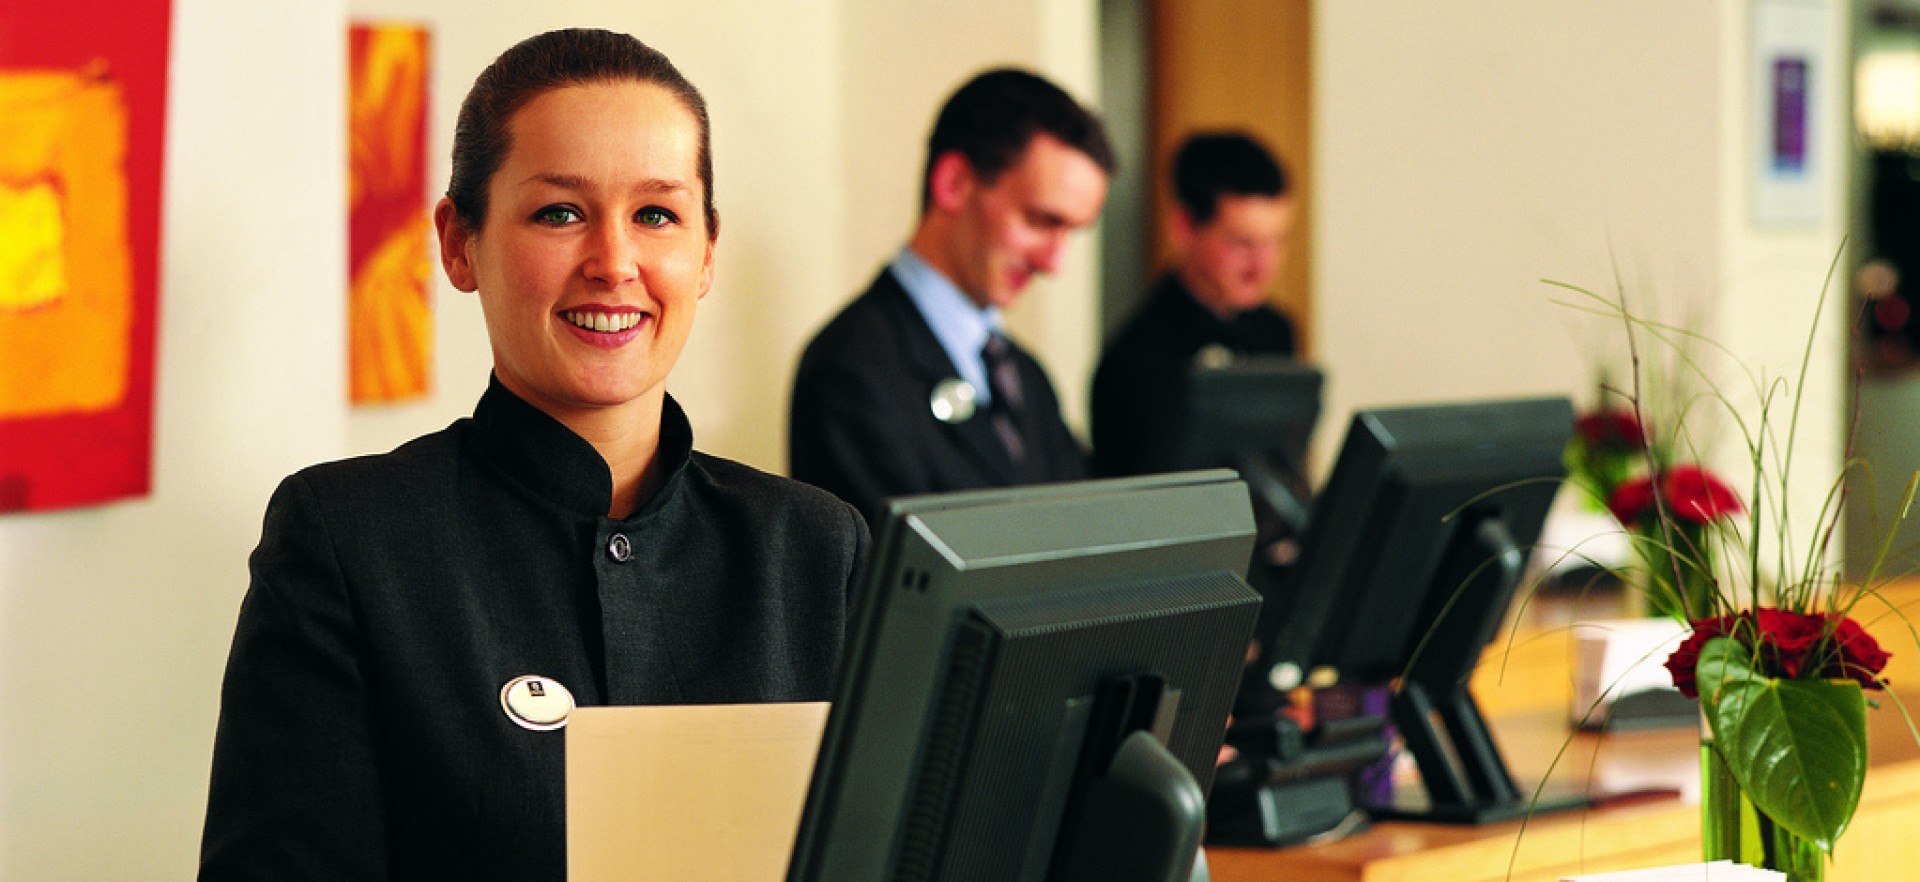 cropped-hotel_software_reception1.jpg